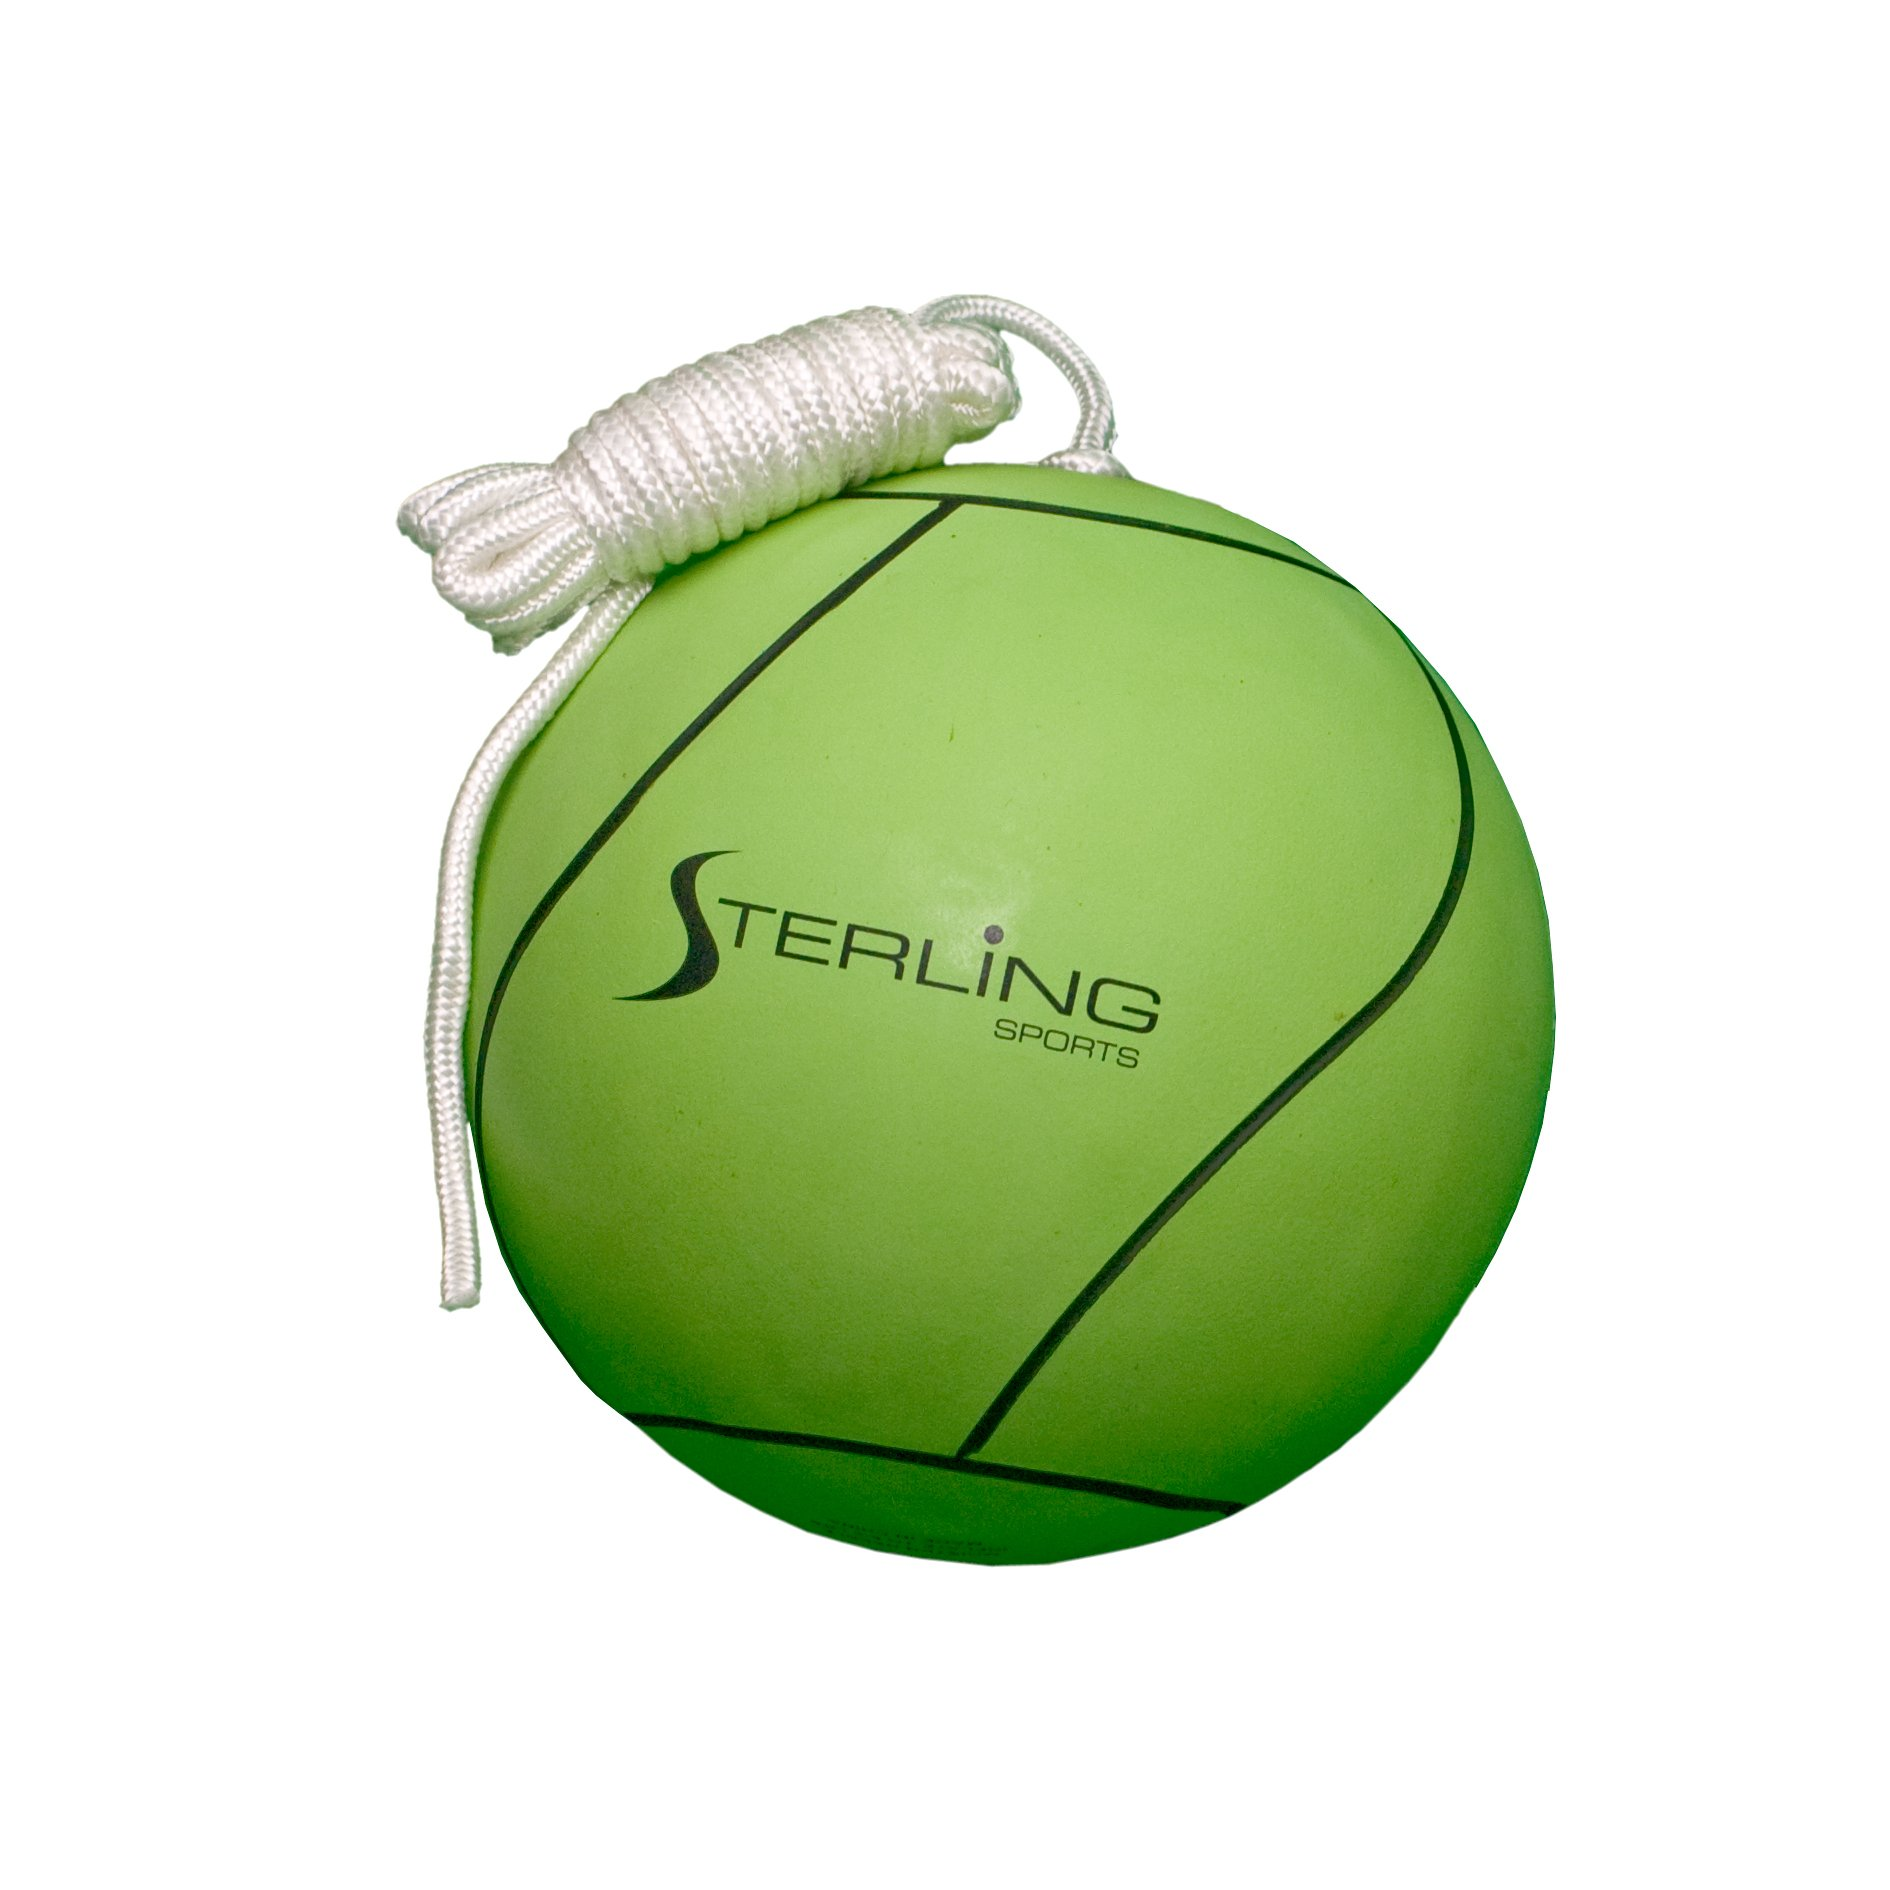 Sterling Sports Neon Tetherball Game, Green, One Size by Sterling Sports